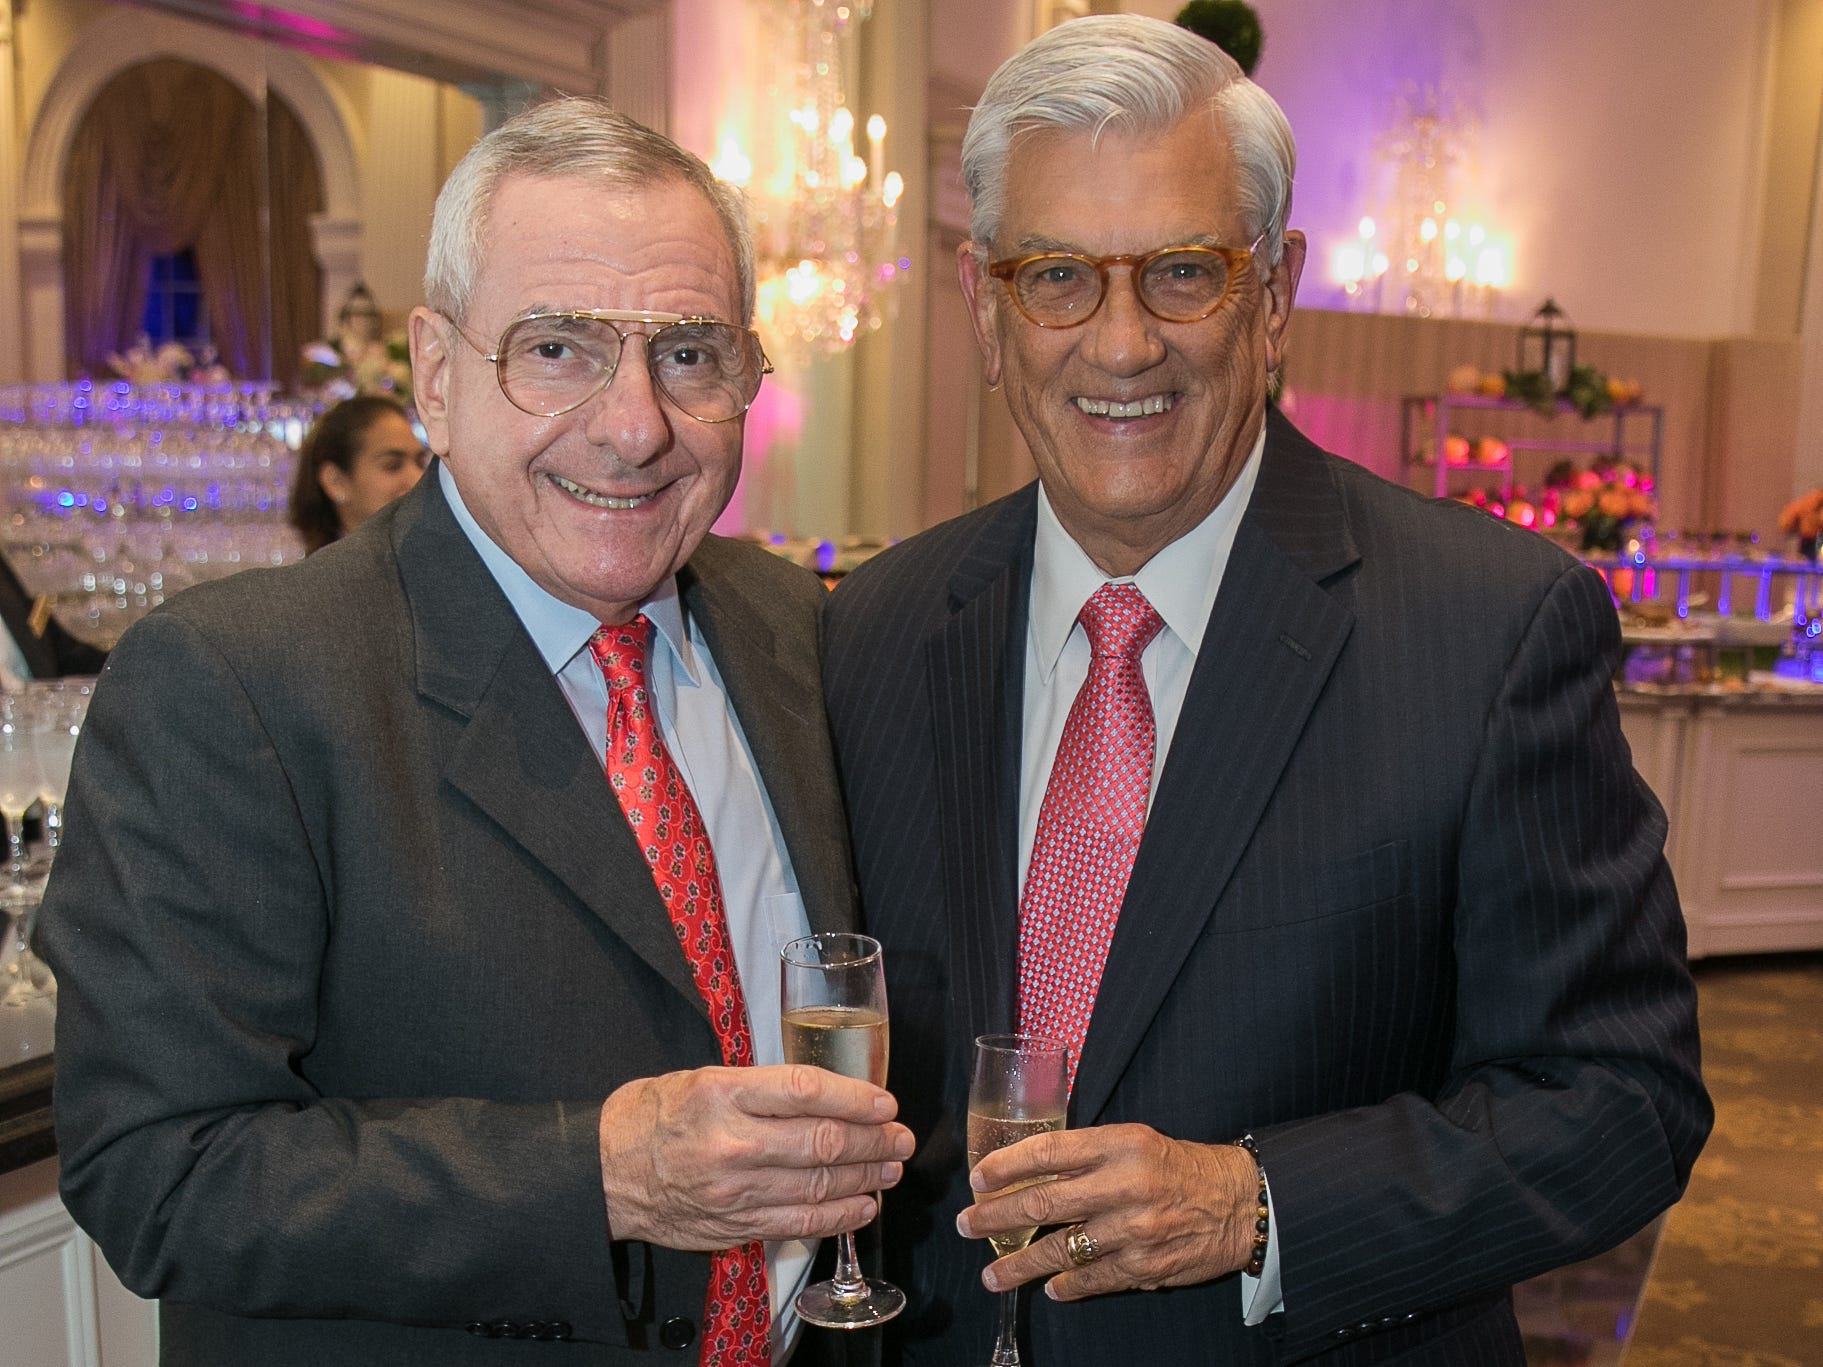 Mauro Romita, George Leahy. Bergen Family Center celebrated 120 years of service with dinner and a silent auction at Th e Rockleigh Country Club.11/1/2018